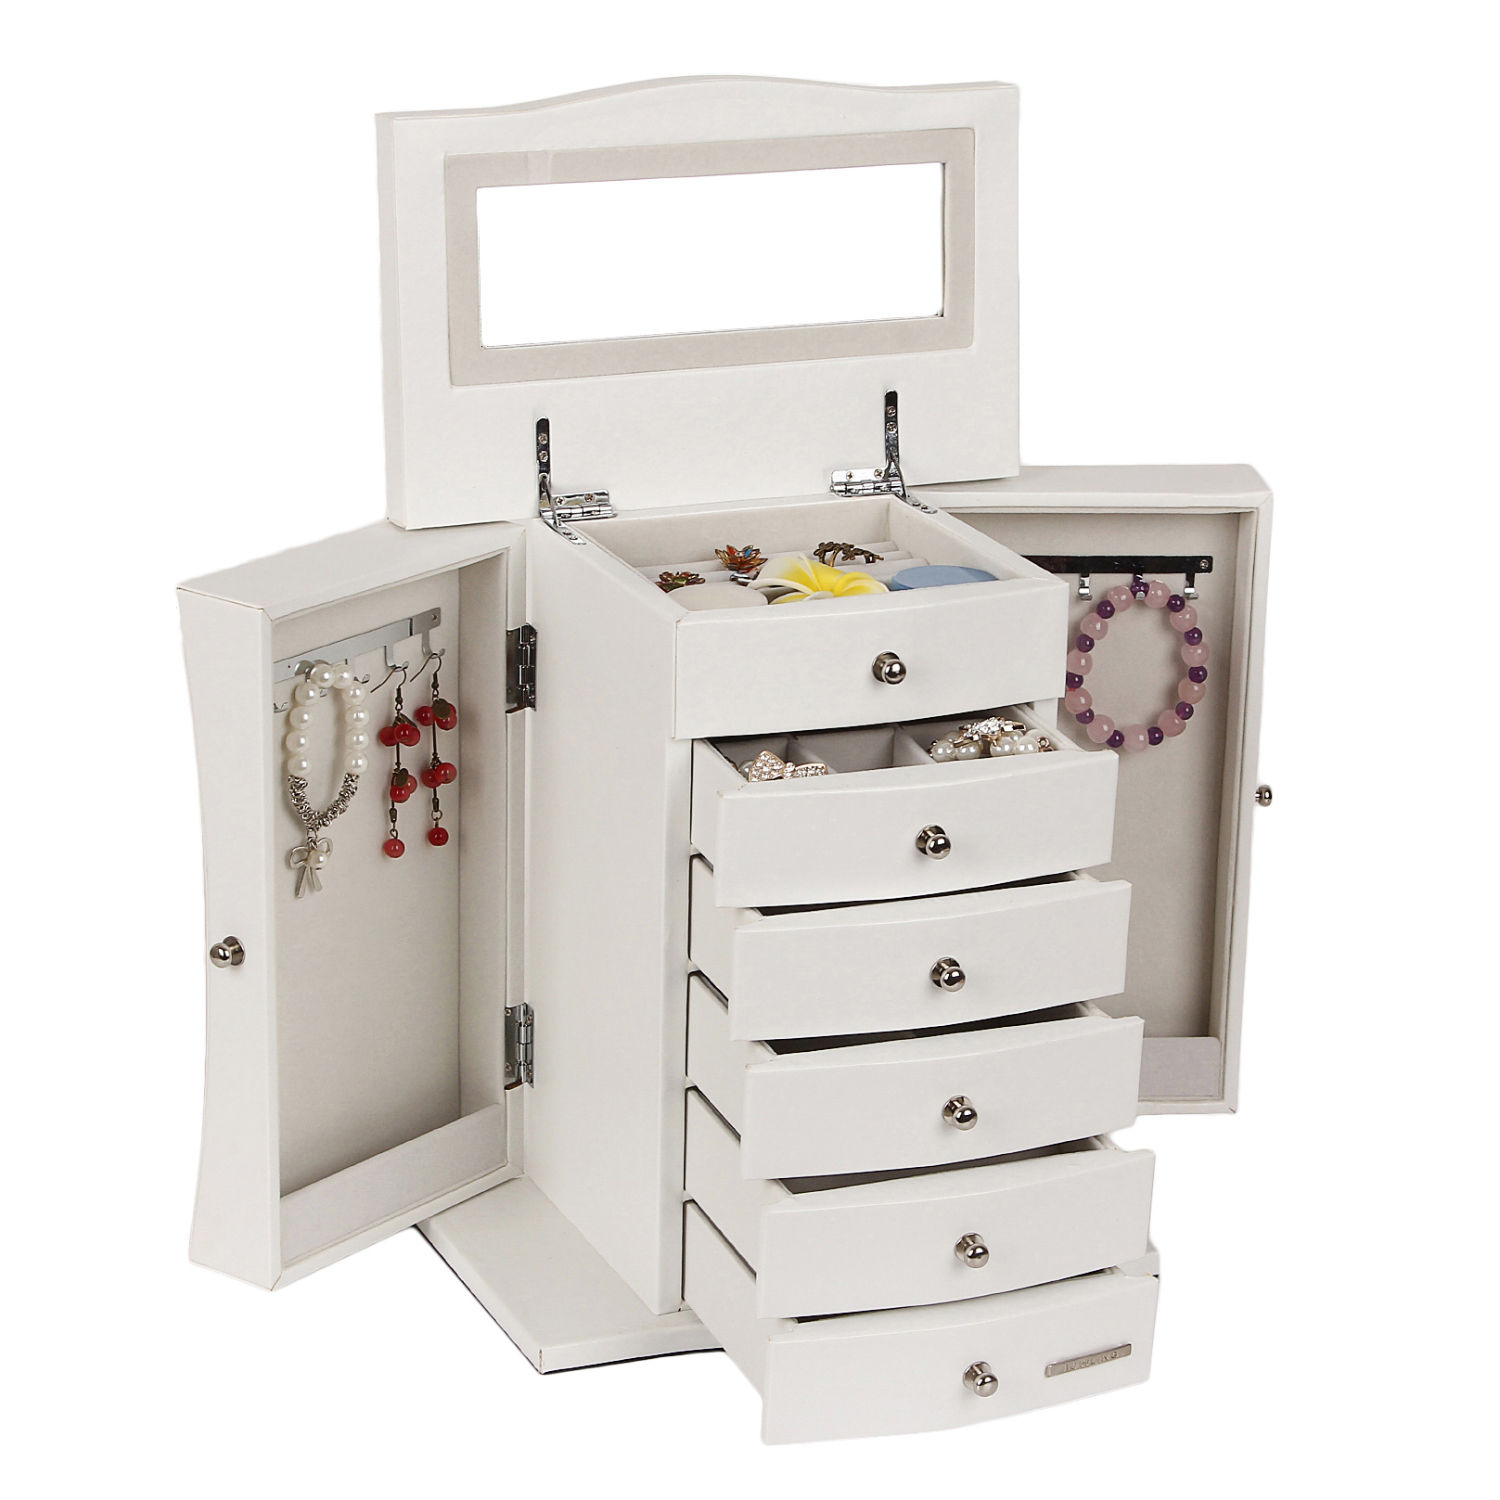 Large Jewelry Box Case Armoire Cabinet Rings Storage Organizer